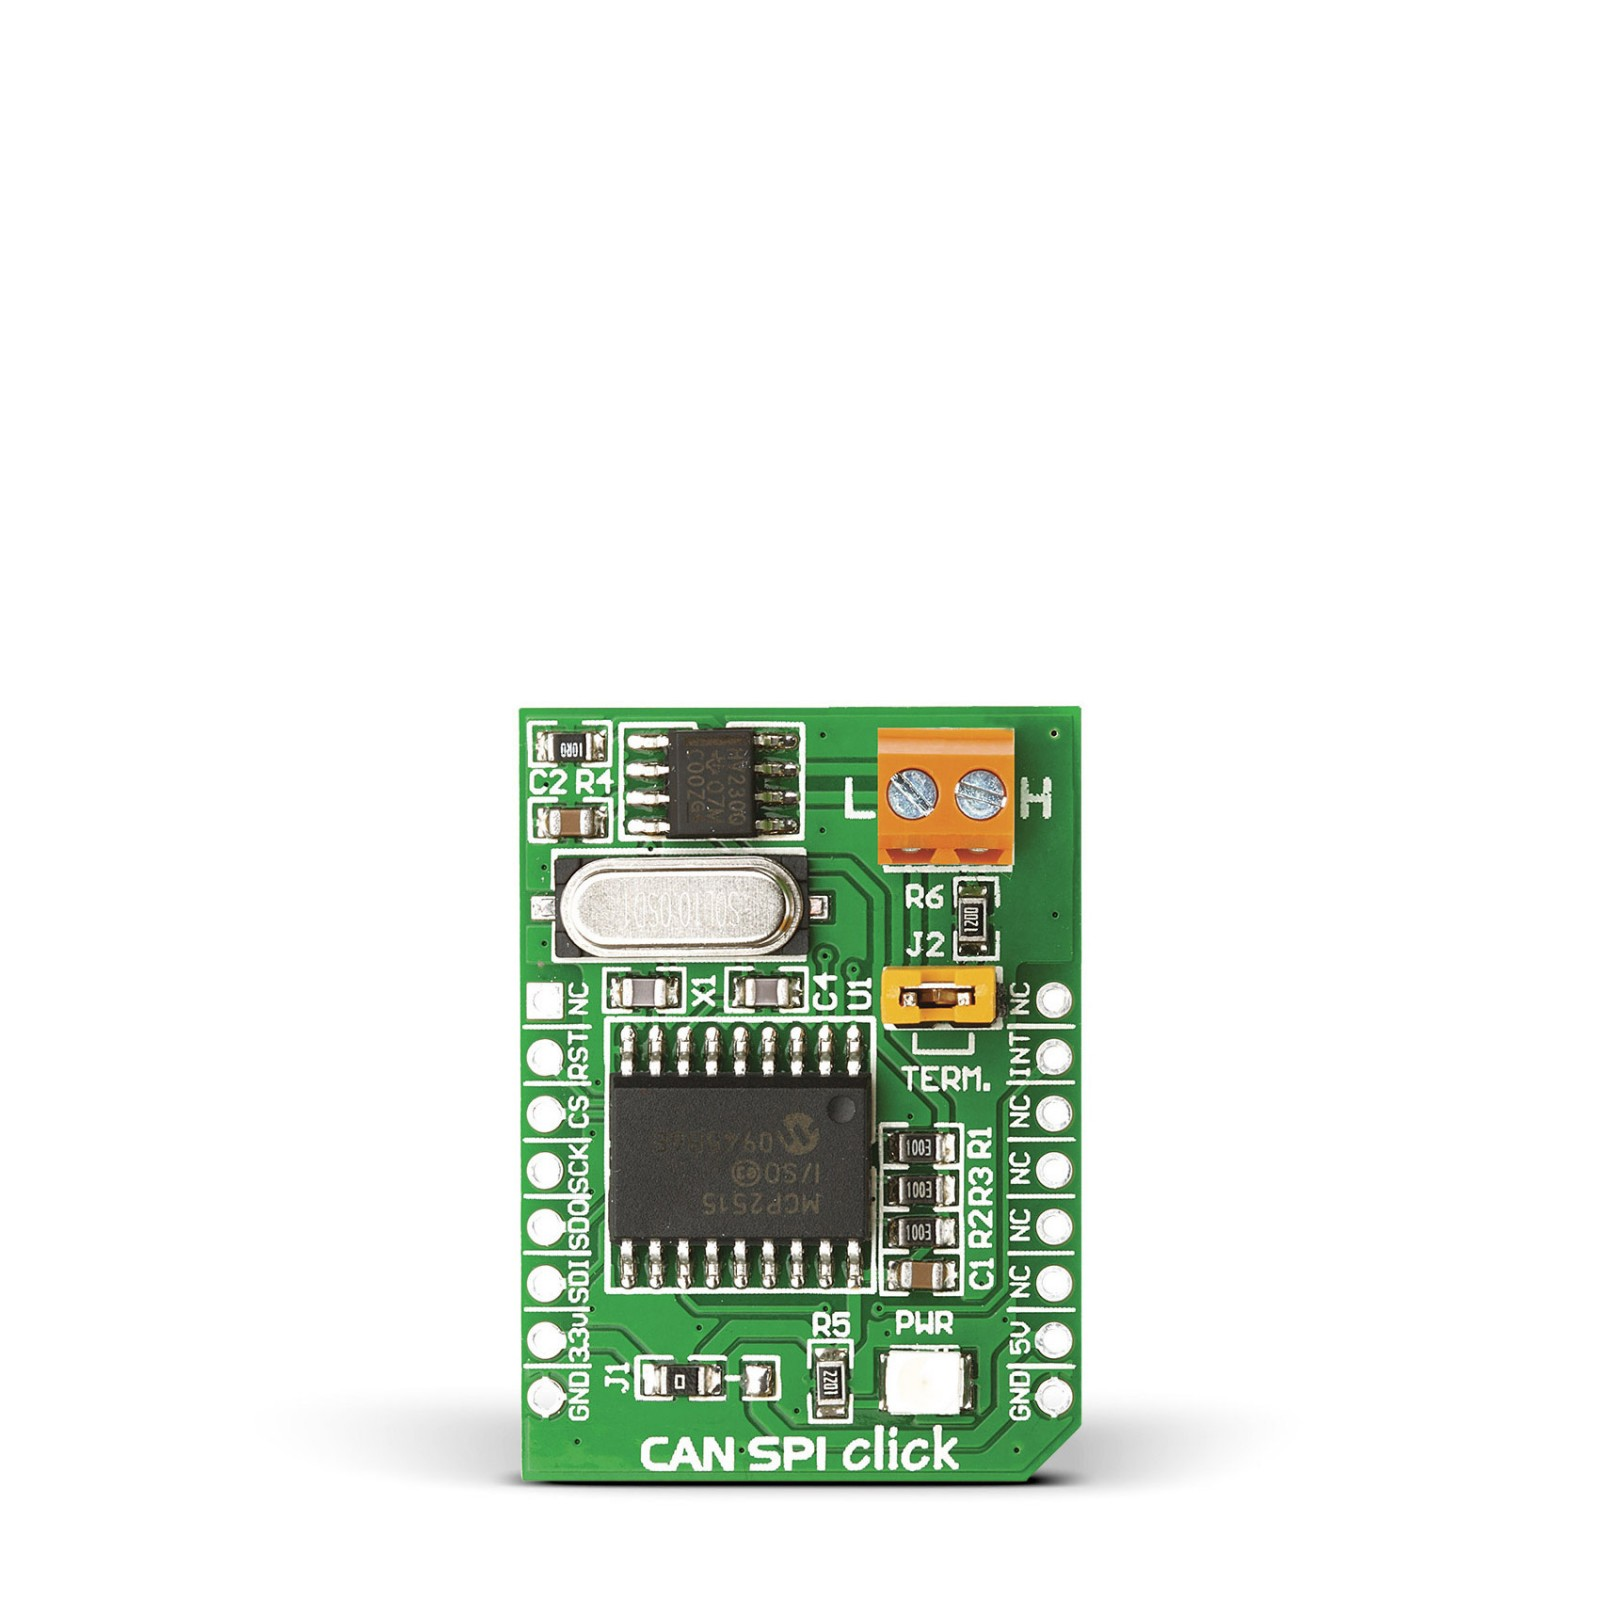 CAN SPI click 3 3v - Breakout board for SN65HVD230 CAN transciever